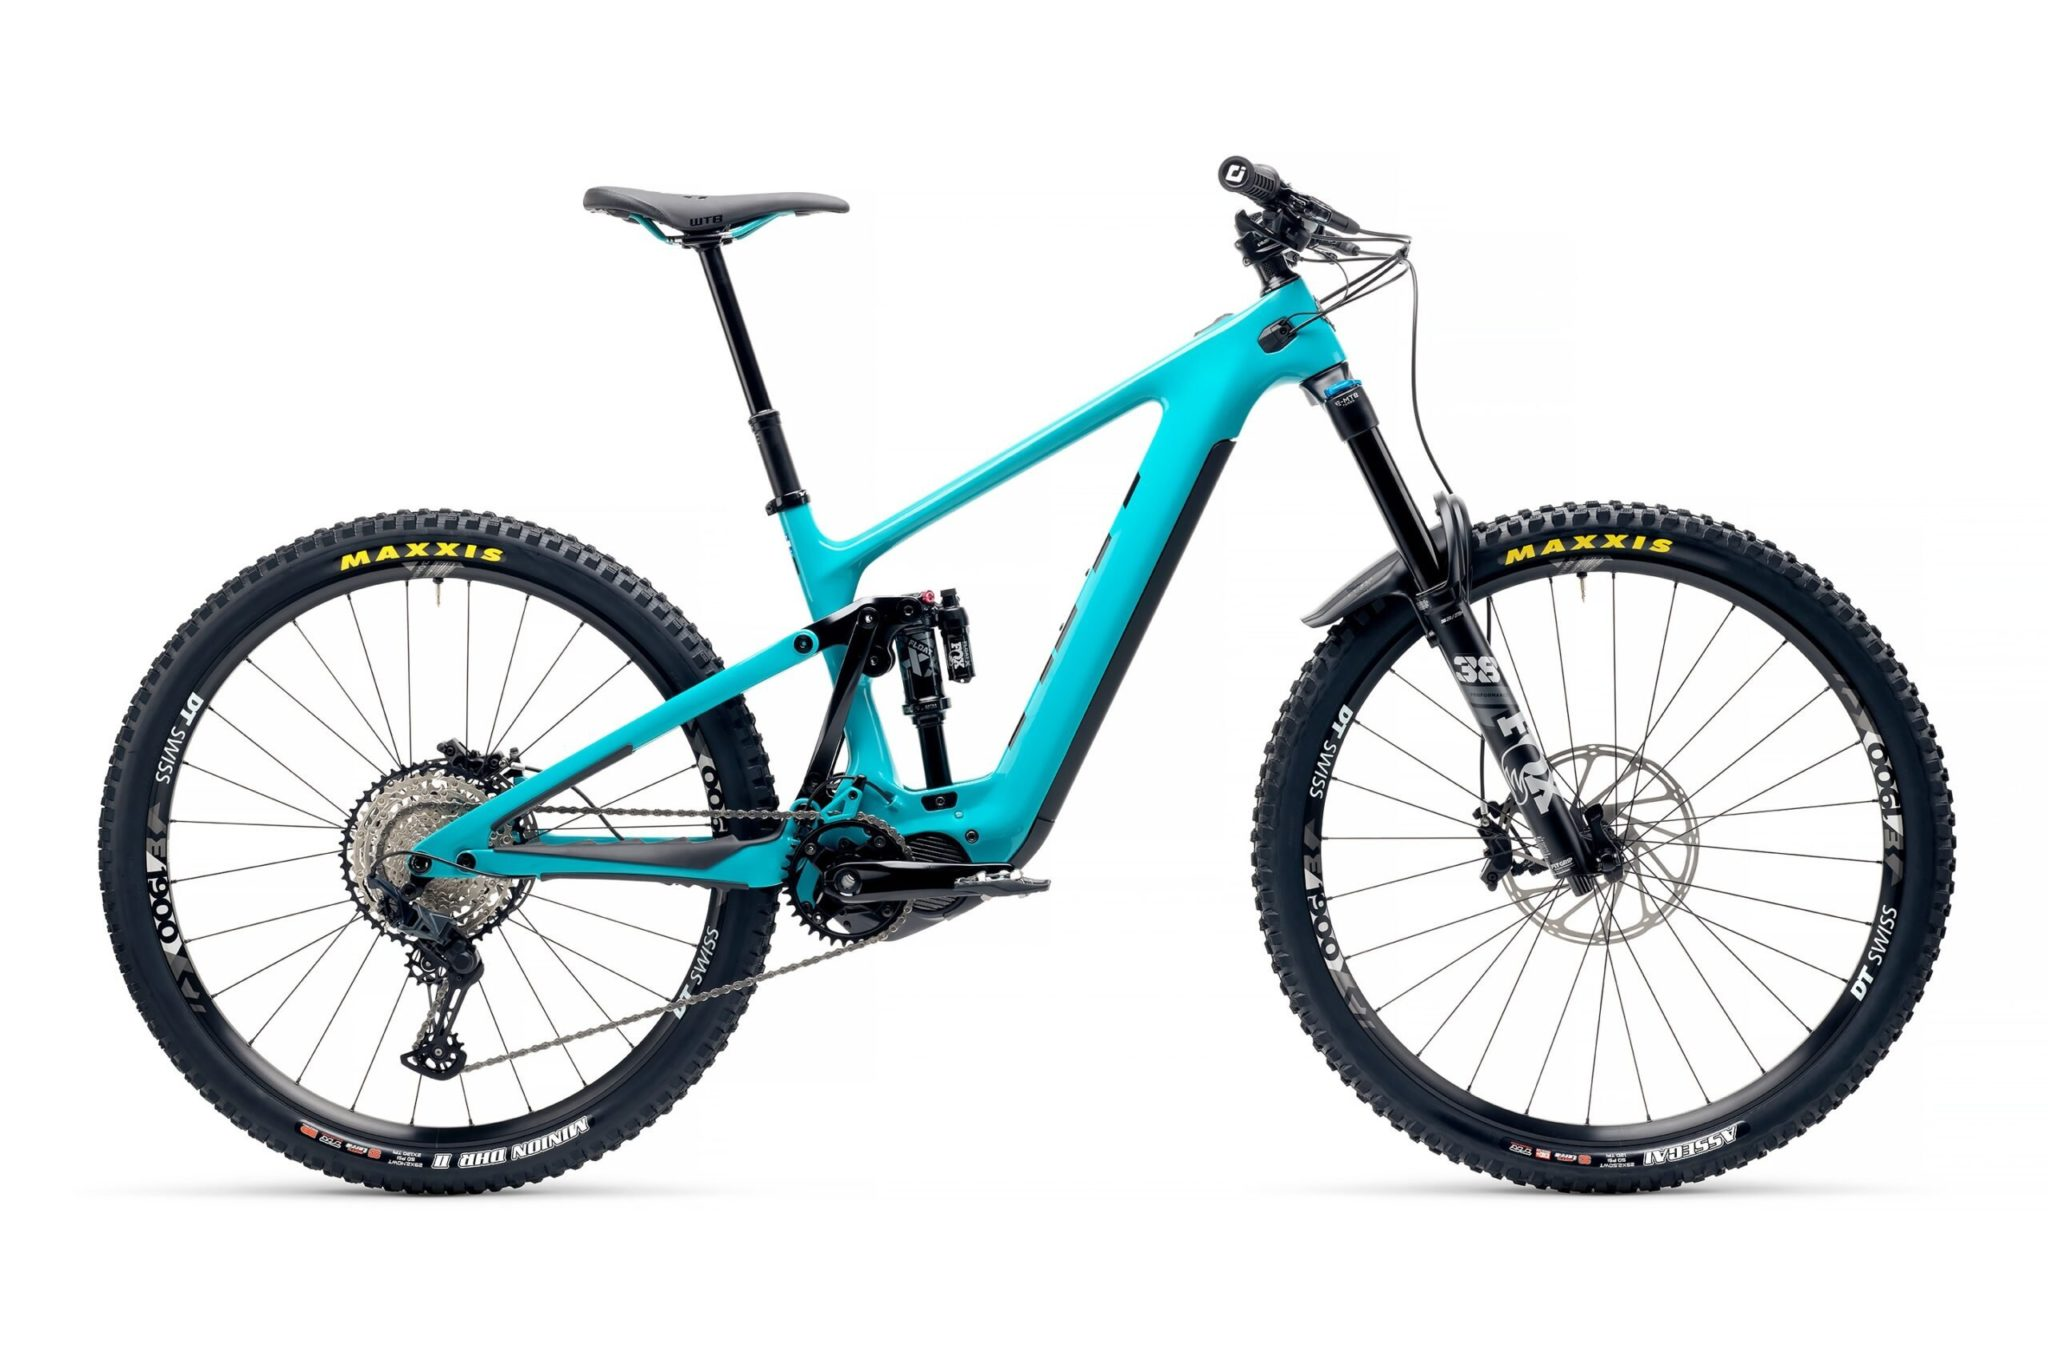 2022 YetiCycles 160E C1 Turq scaled 1